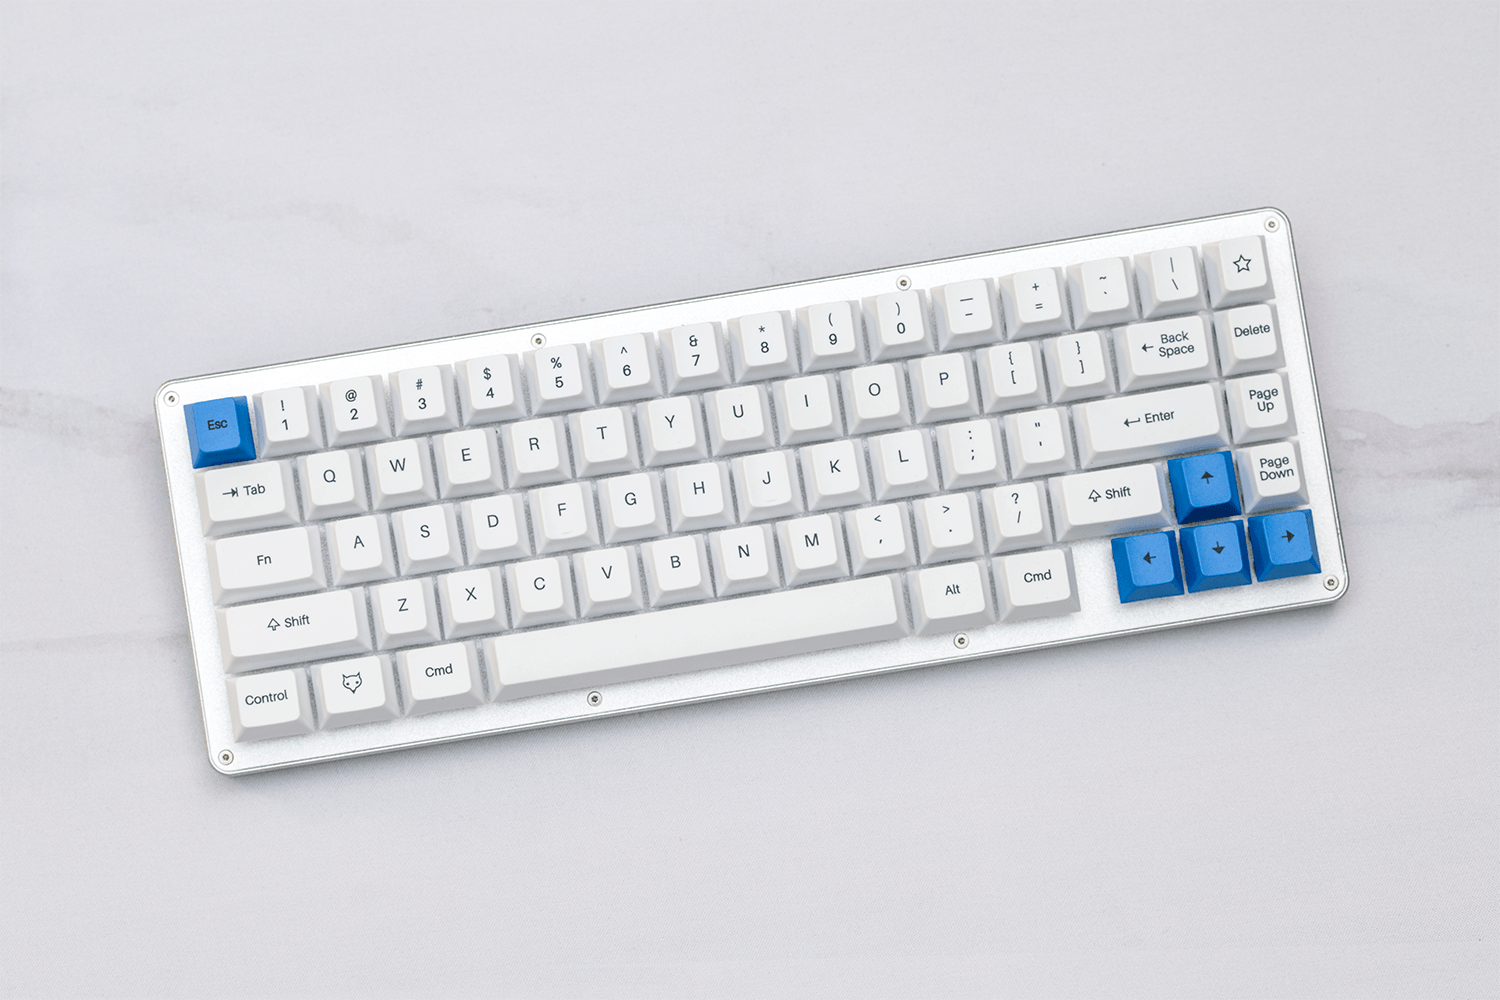 WhiteFox Mechanical Keyboard on a GMK Camping Keyset themed desk mat by Novelkeys